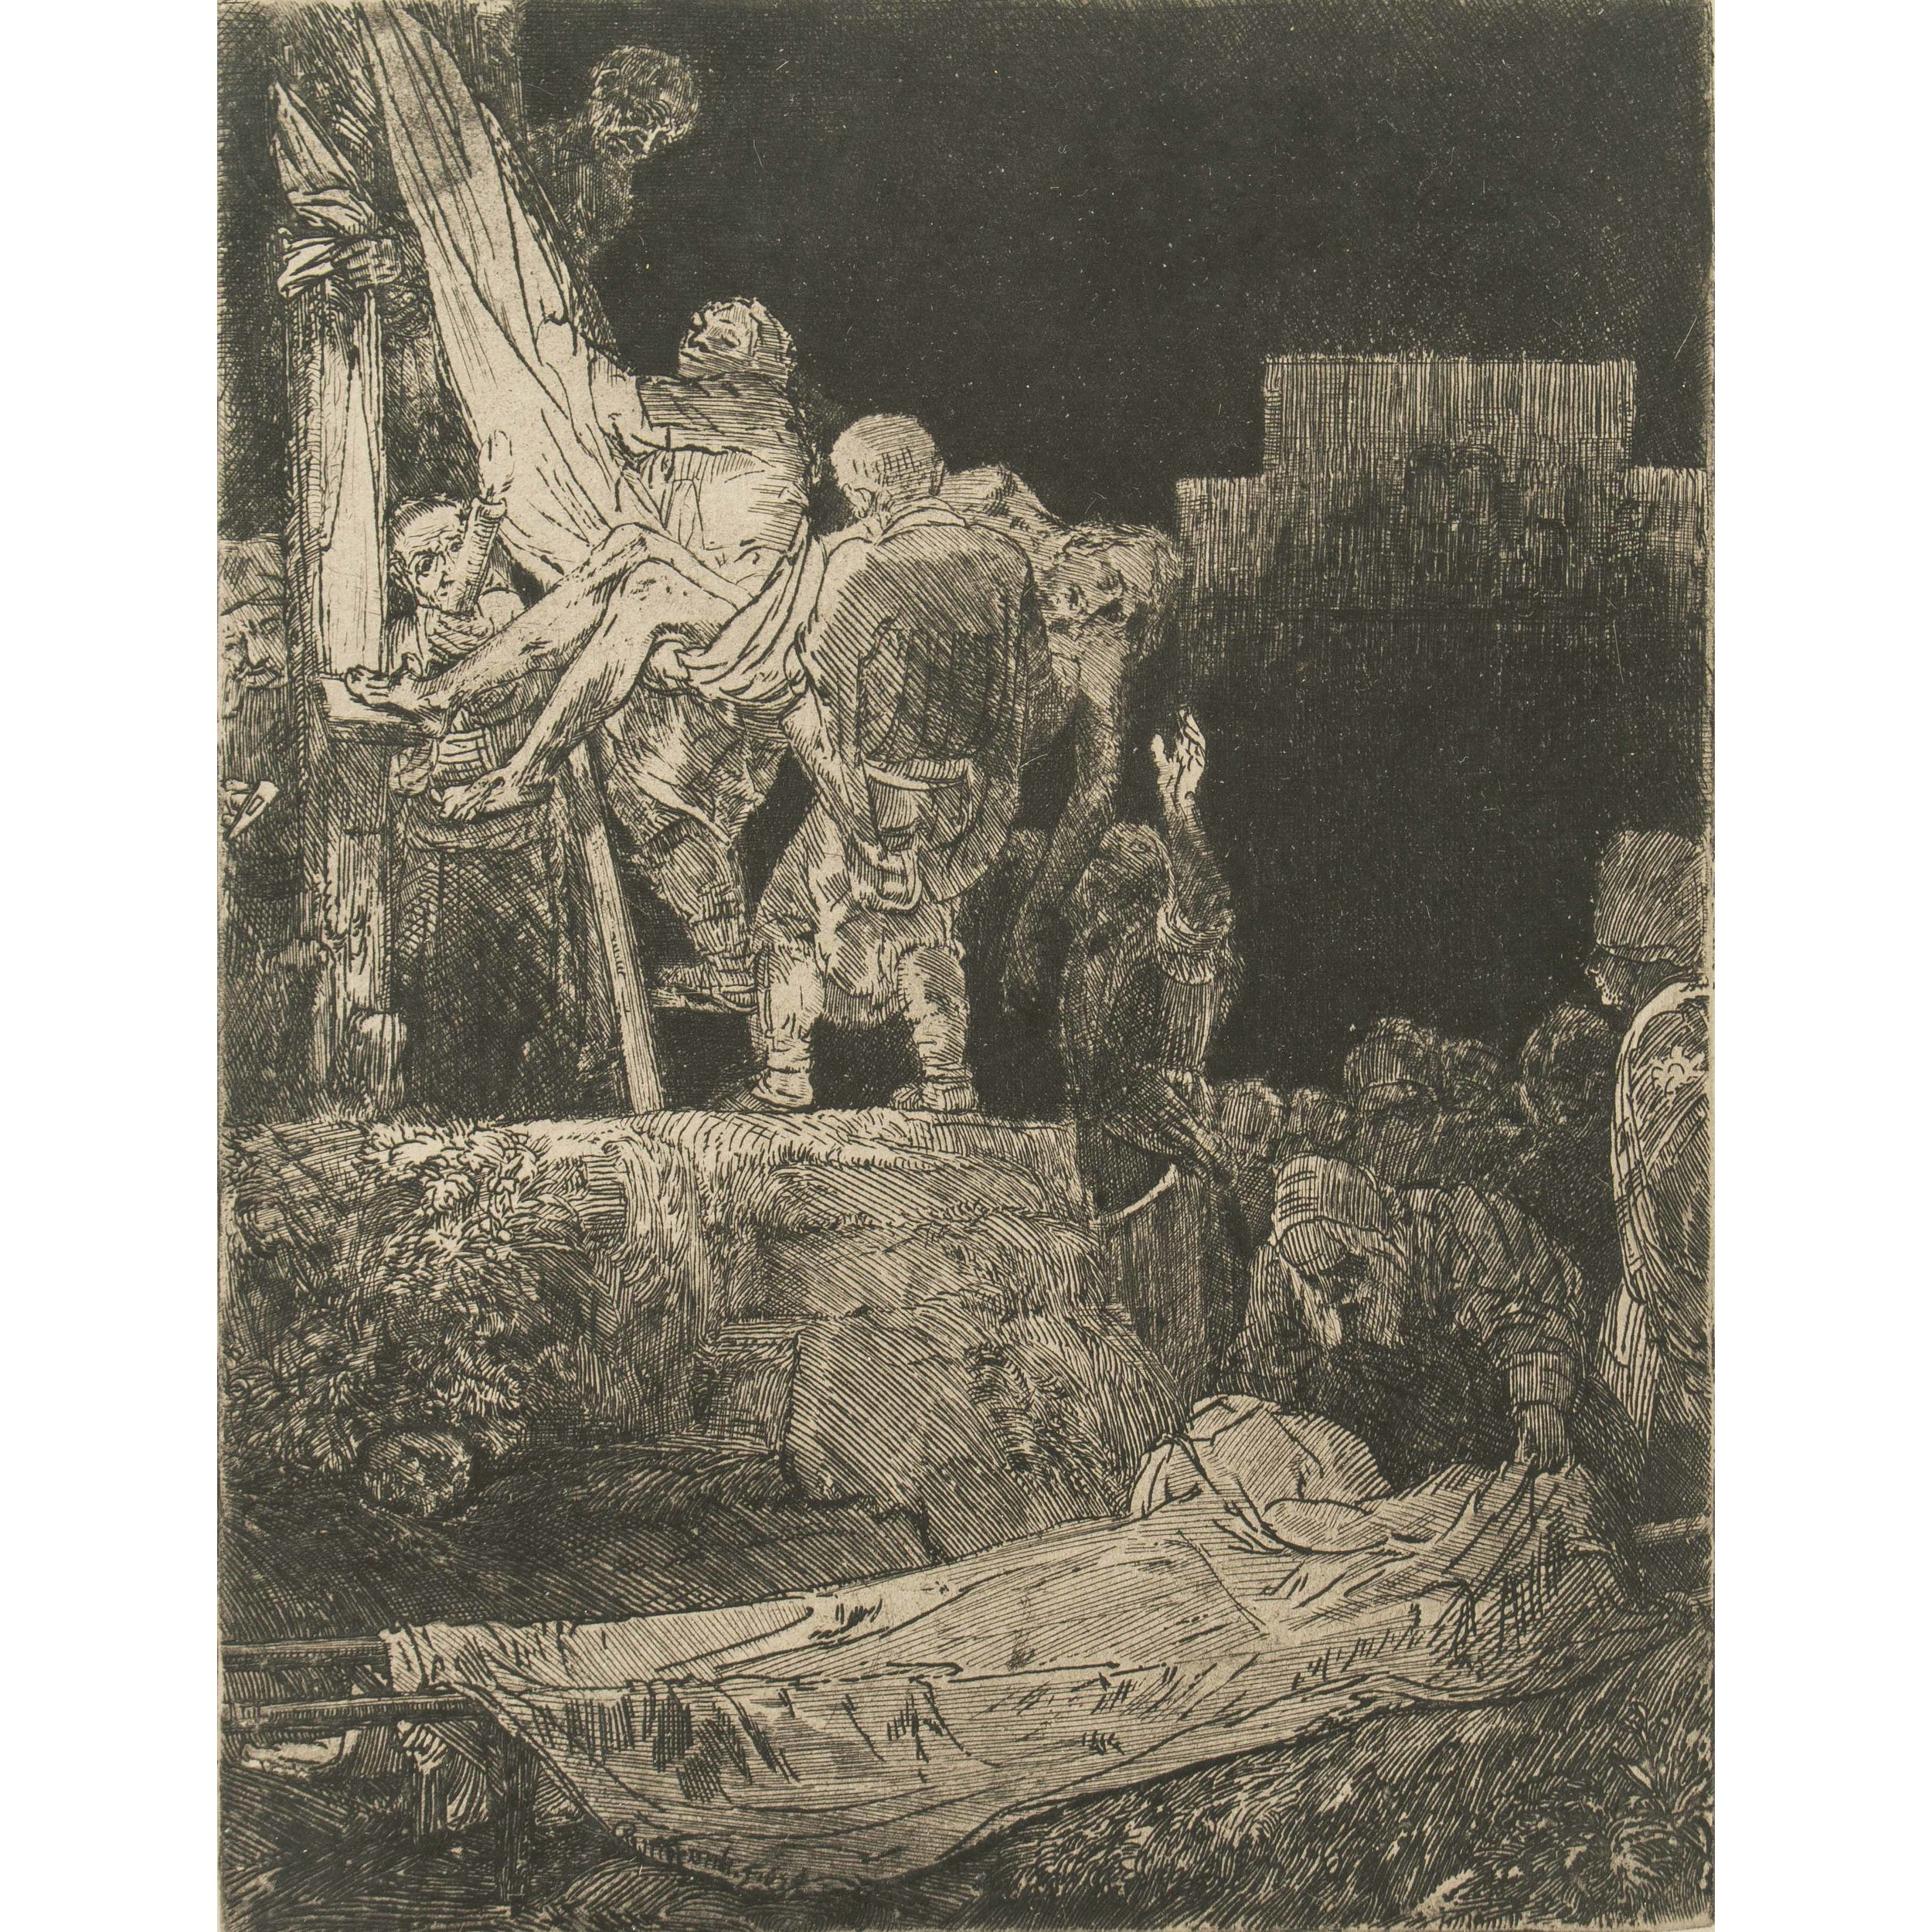 Rembrandt Van Rijn Etching Witherell S Auction House